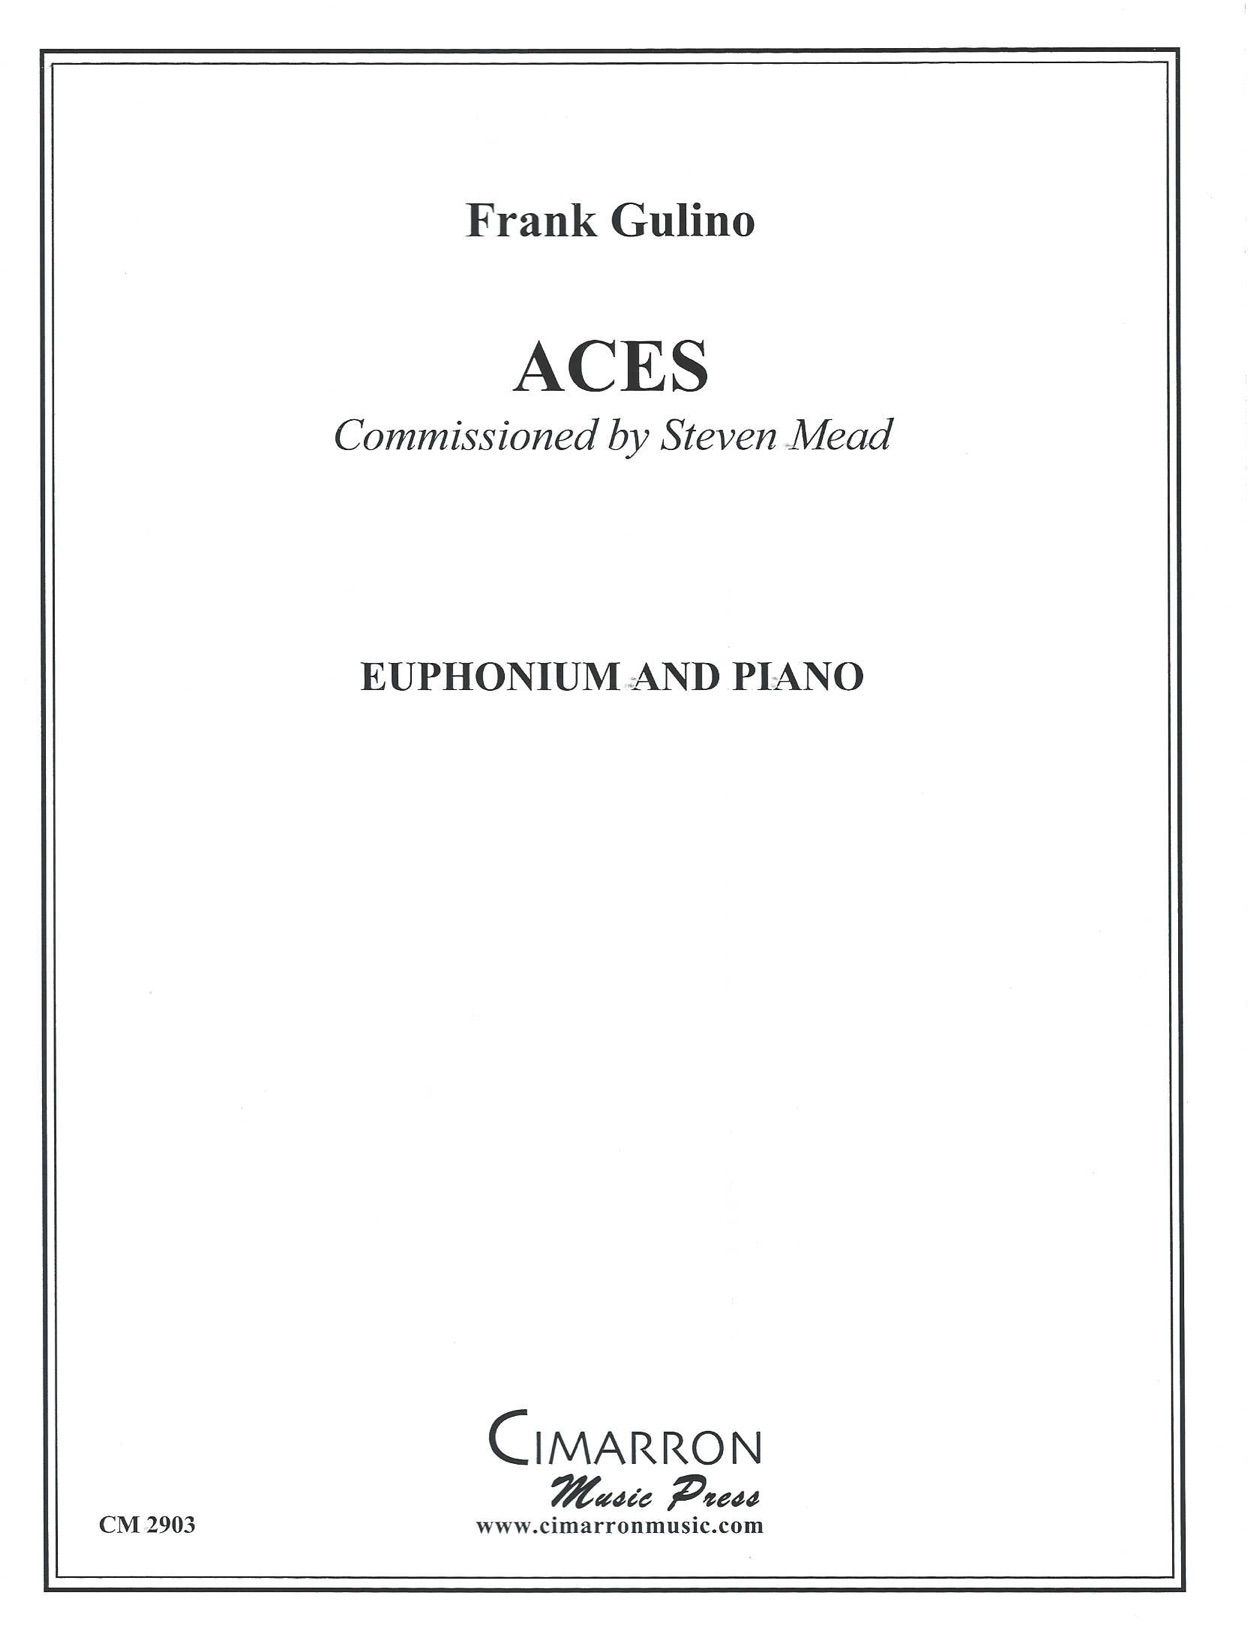 Aces - (Frank Gulino) - Euphonium solo with piano accompaniment